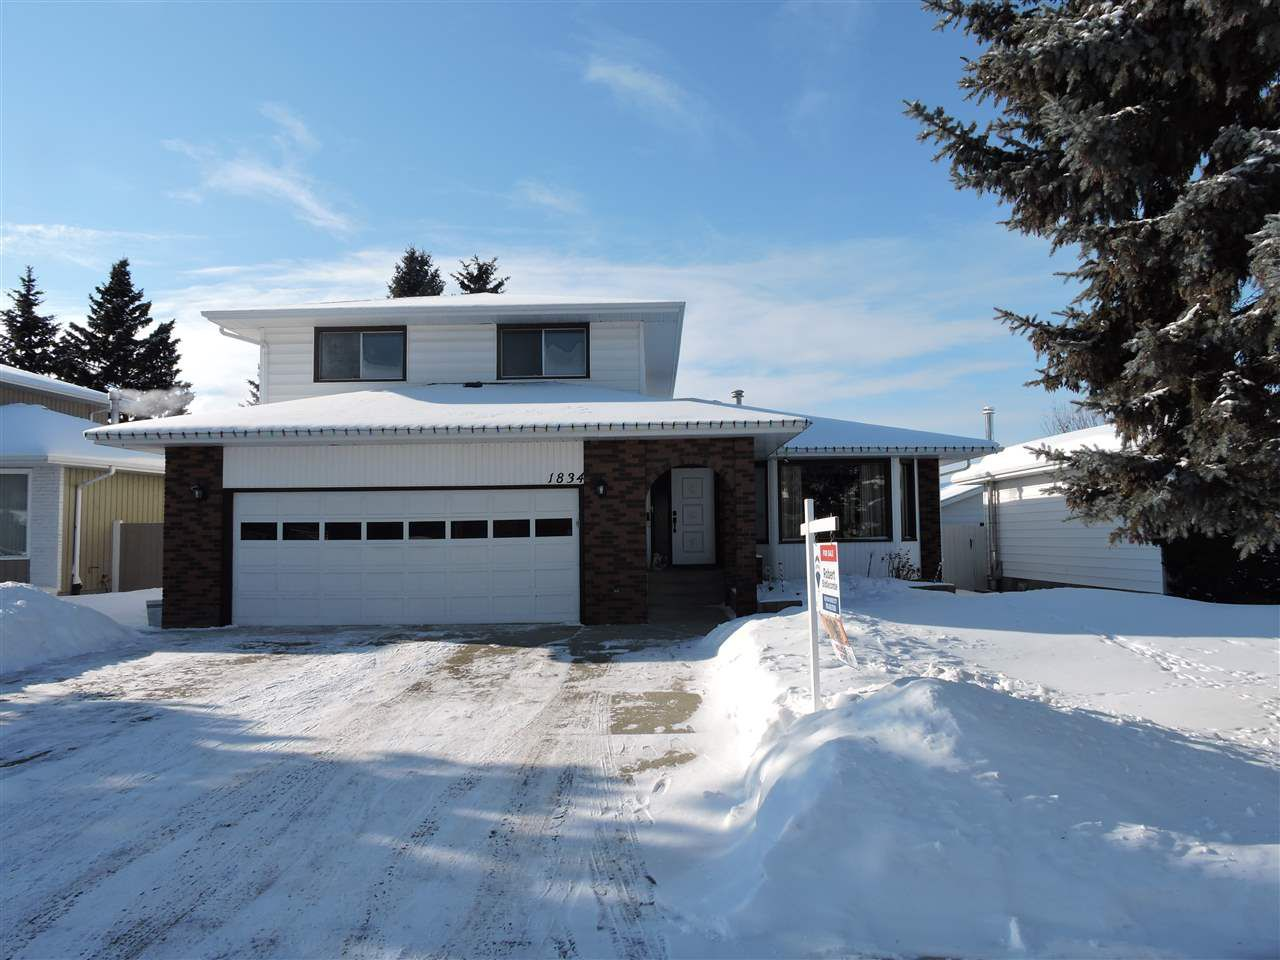 Main Photo: 1834 73 Street NW in Edmonton: Zone 29 House for sale : MLS®# E4143712